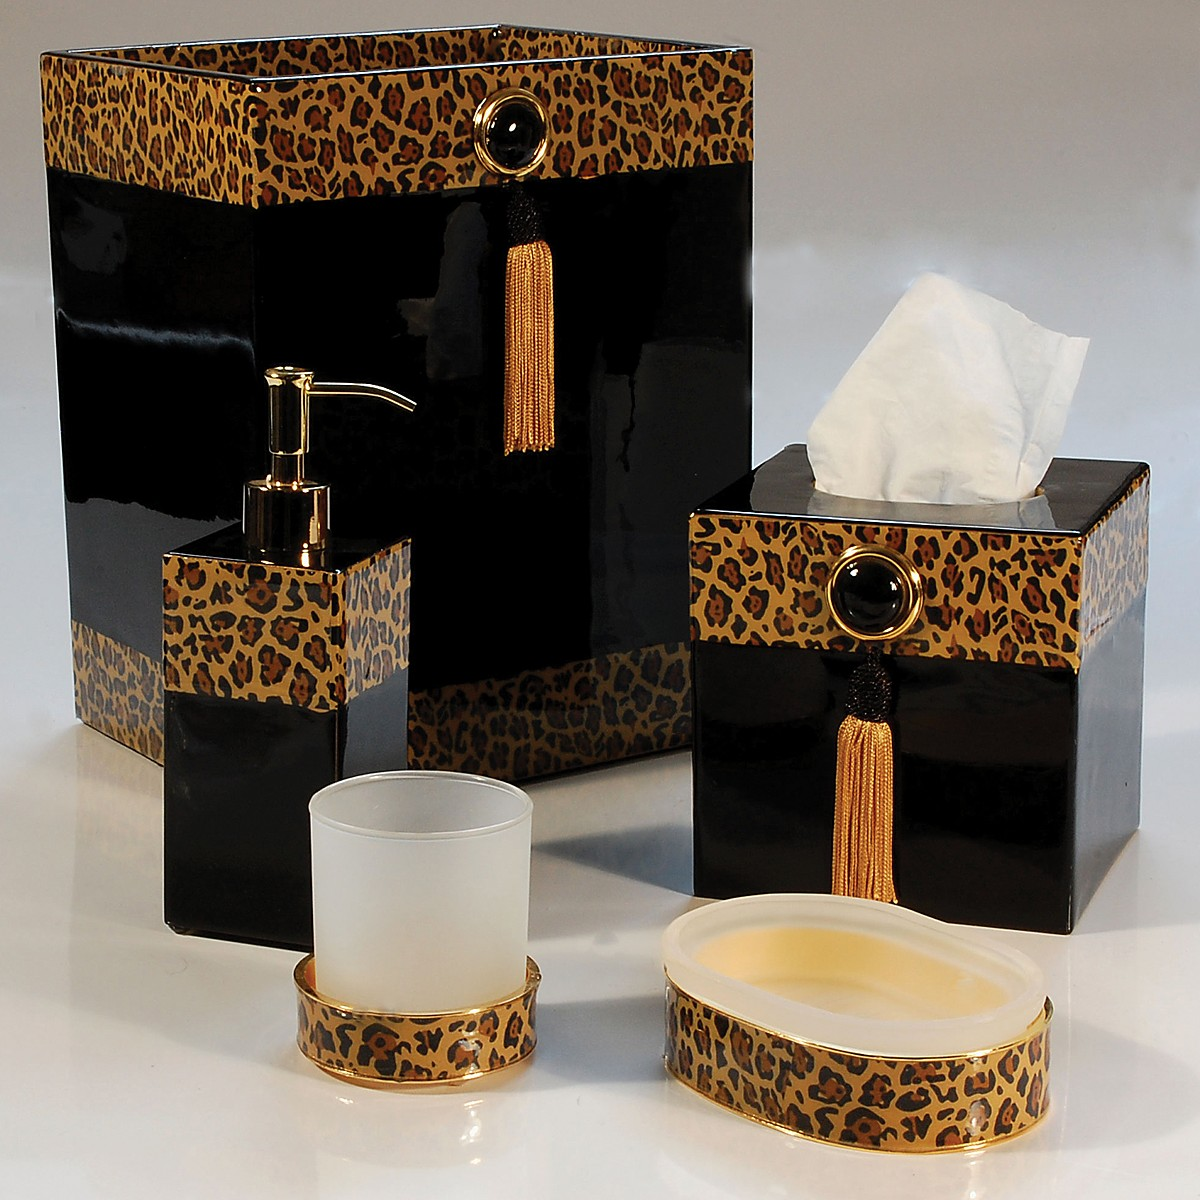 Leopard Bathroom Decor Bathroom Decorations Animal Designs And